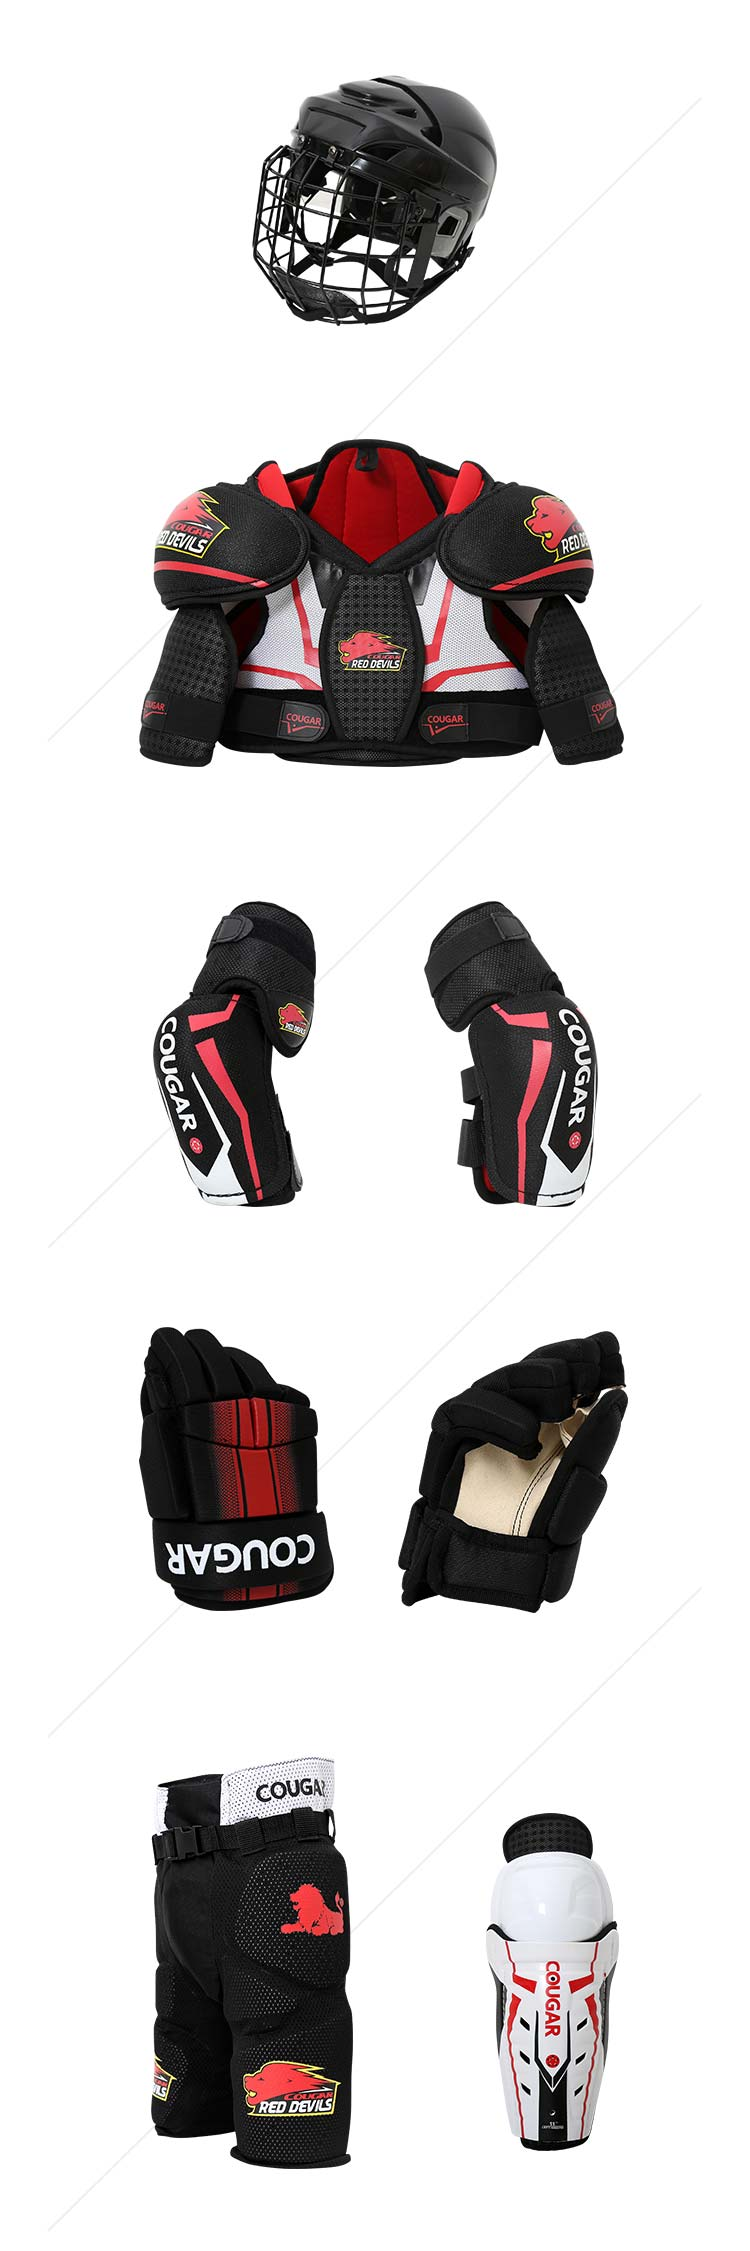 Guangdong Manufacturer best quality children full set player's skates inline hockey equipment